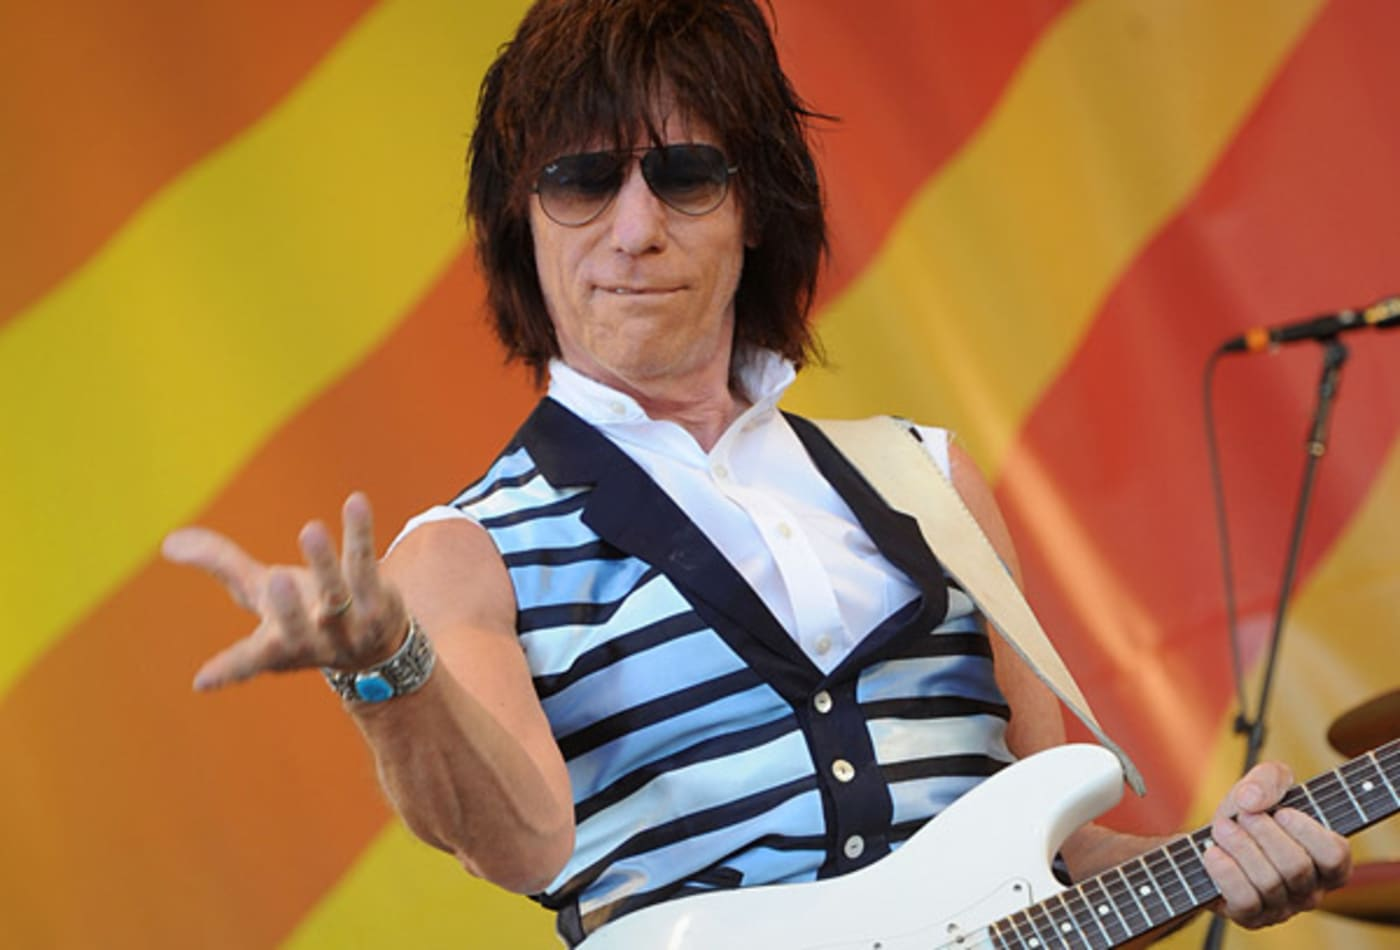 jeff-beck-fingers.jpg